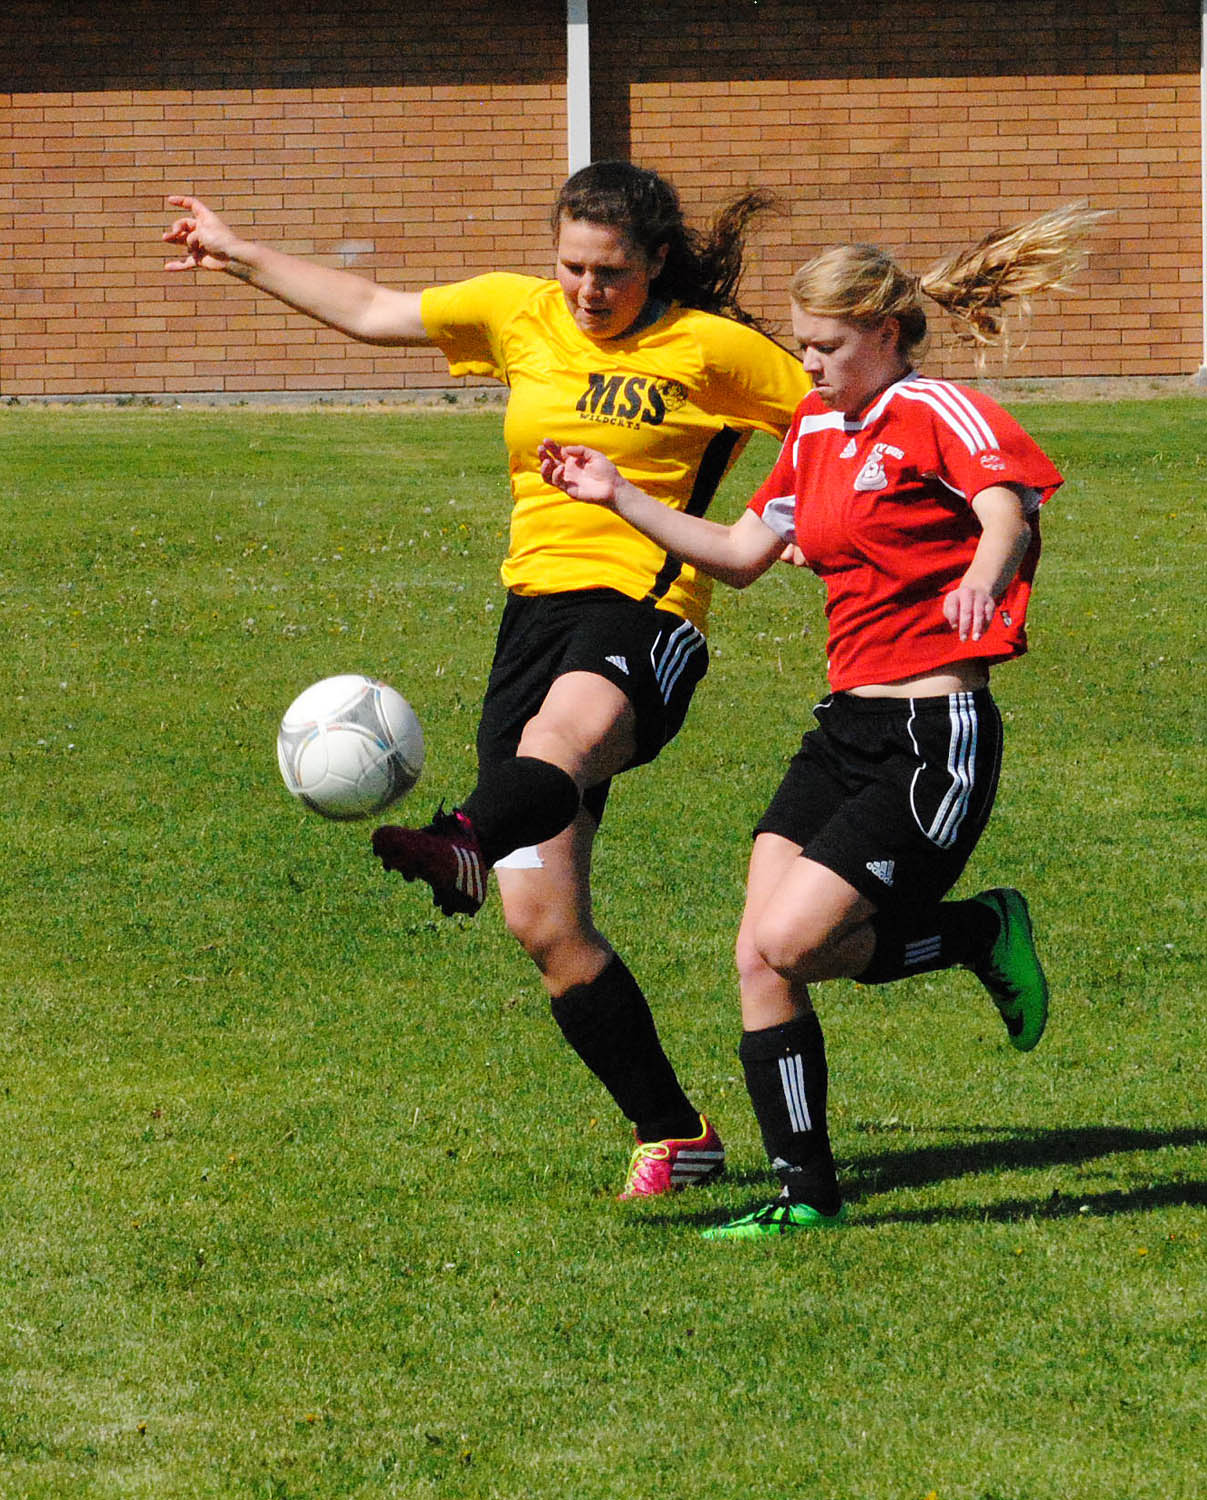 Sami Luinenberg of the Rattlers, on right, battles a Mt. Sentinel opponent for ball possession during the Rural Schools Invitational soccer tournament, held last weekend at Osoyoos  Secondary School. (Dale Corey photo)